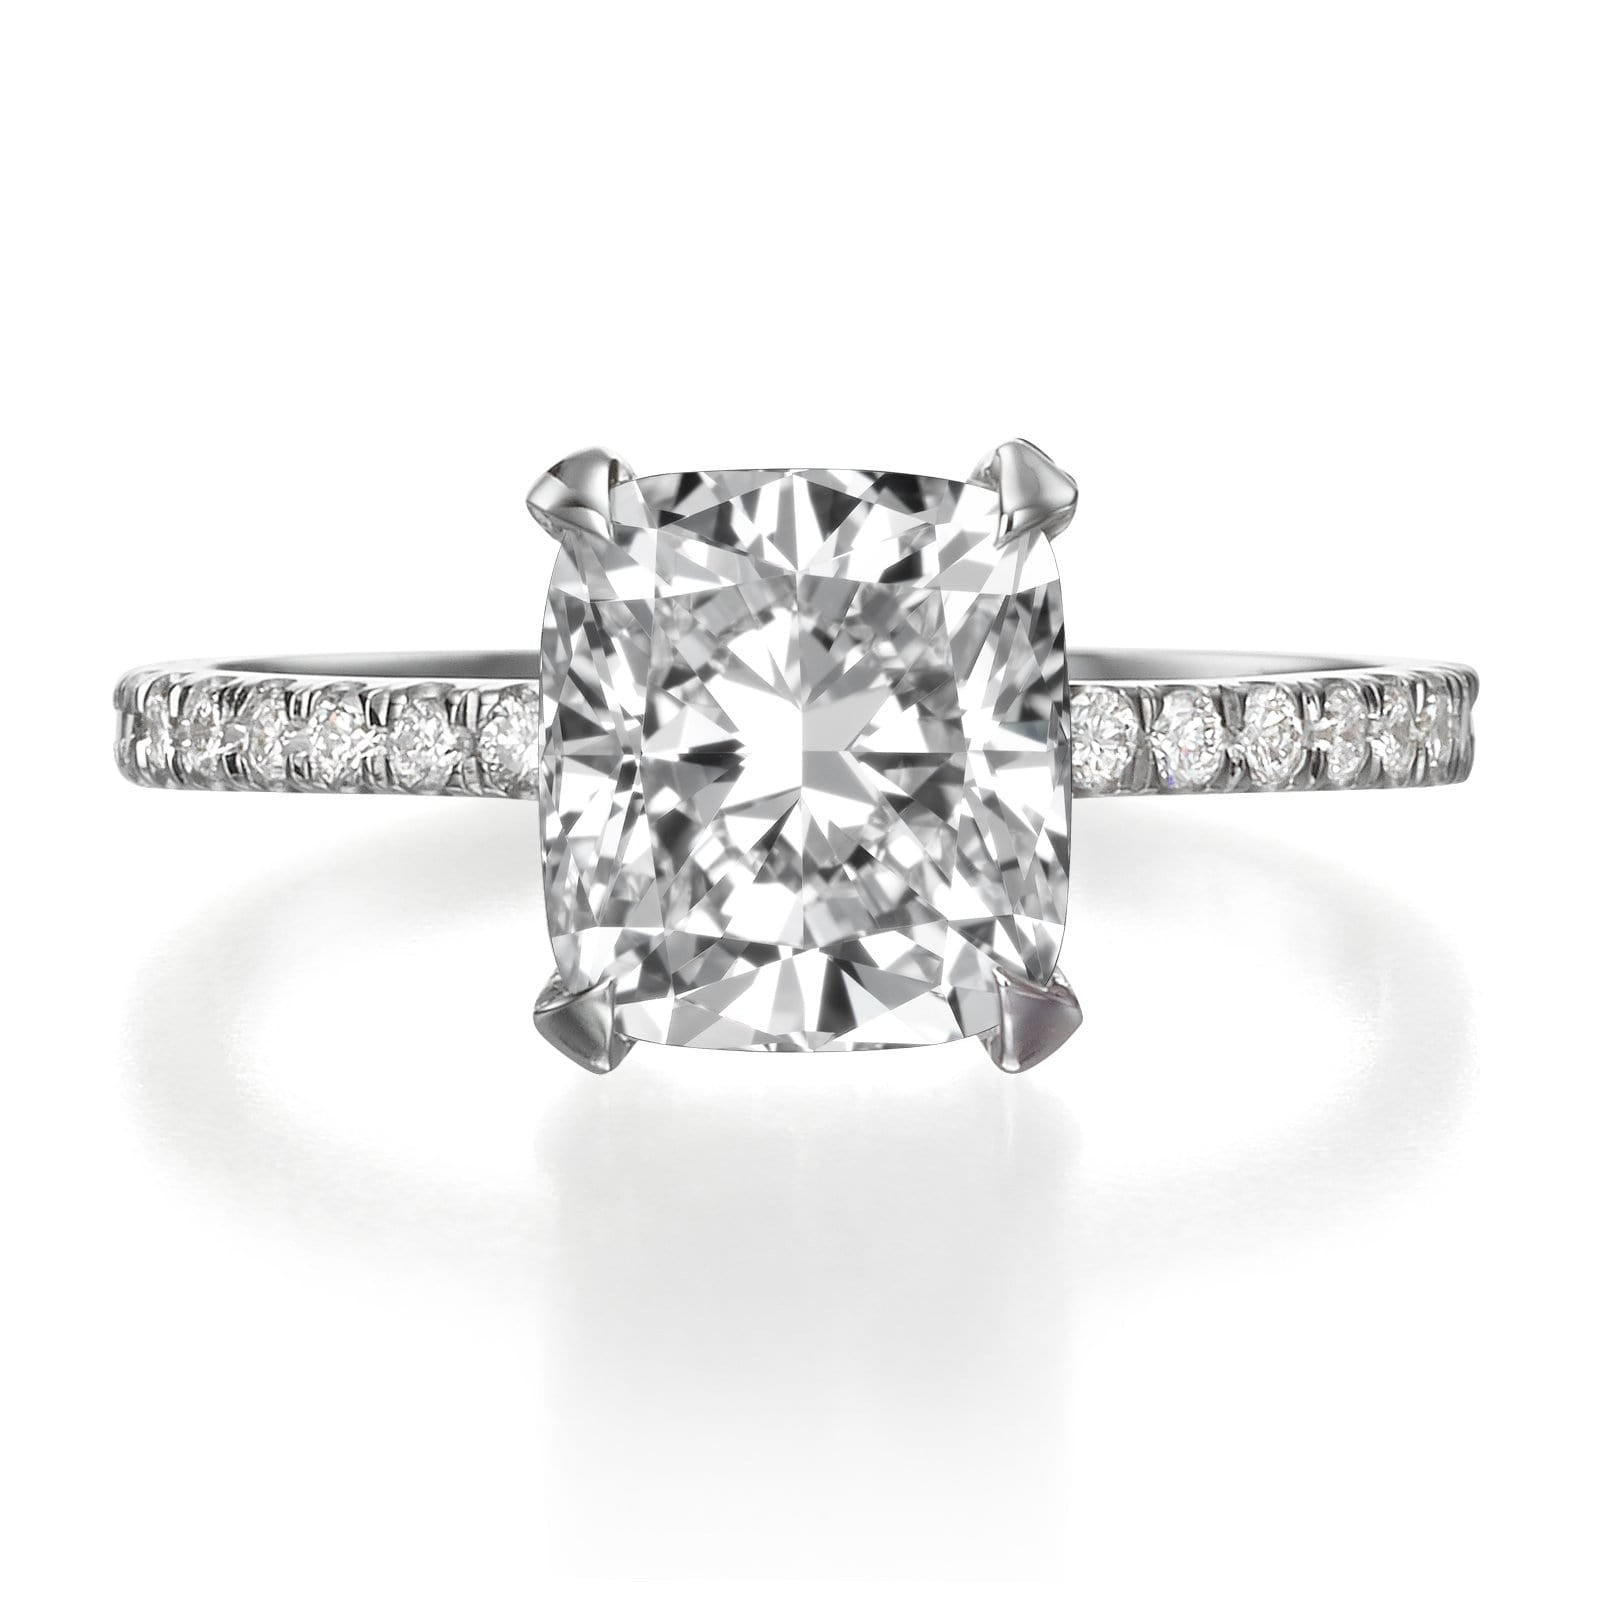 influenced outlet optimized rings important cut and tolkowsky only most of factor is ideal engagement in ring diamond by beauty a determining man aspect value the